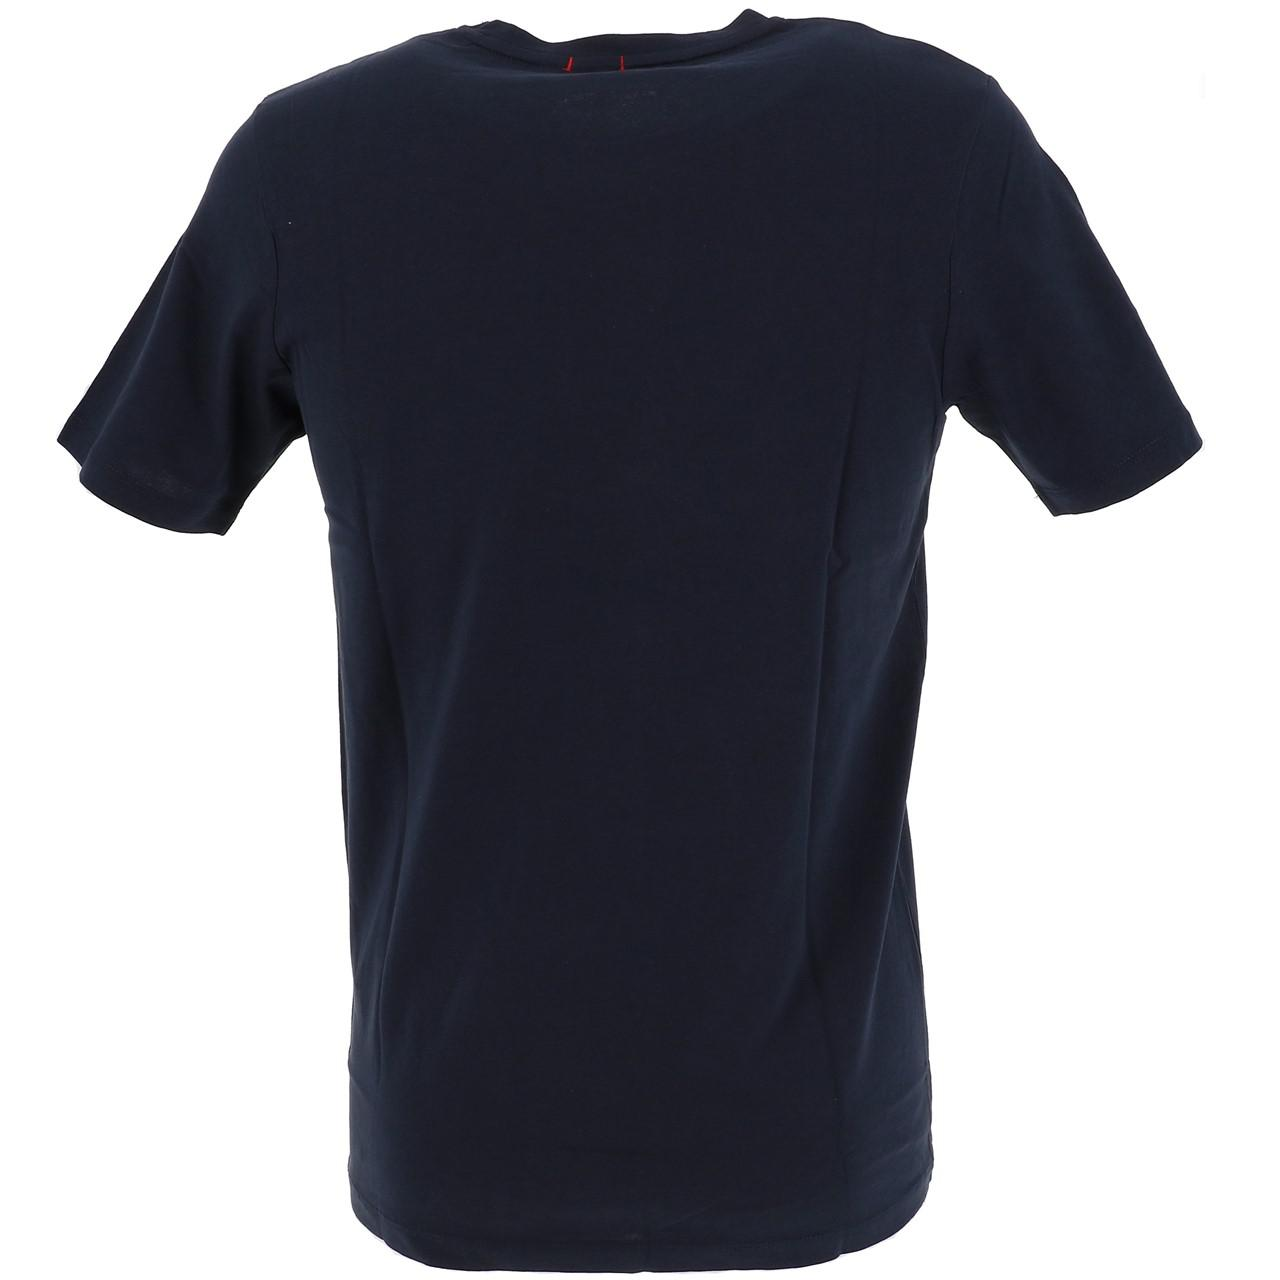 Short-Jack-and-jones-Hotel-Total-Eclipse-Tee-Blue-18535-Does-Not thumbnail 5